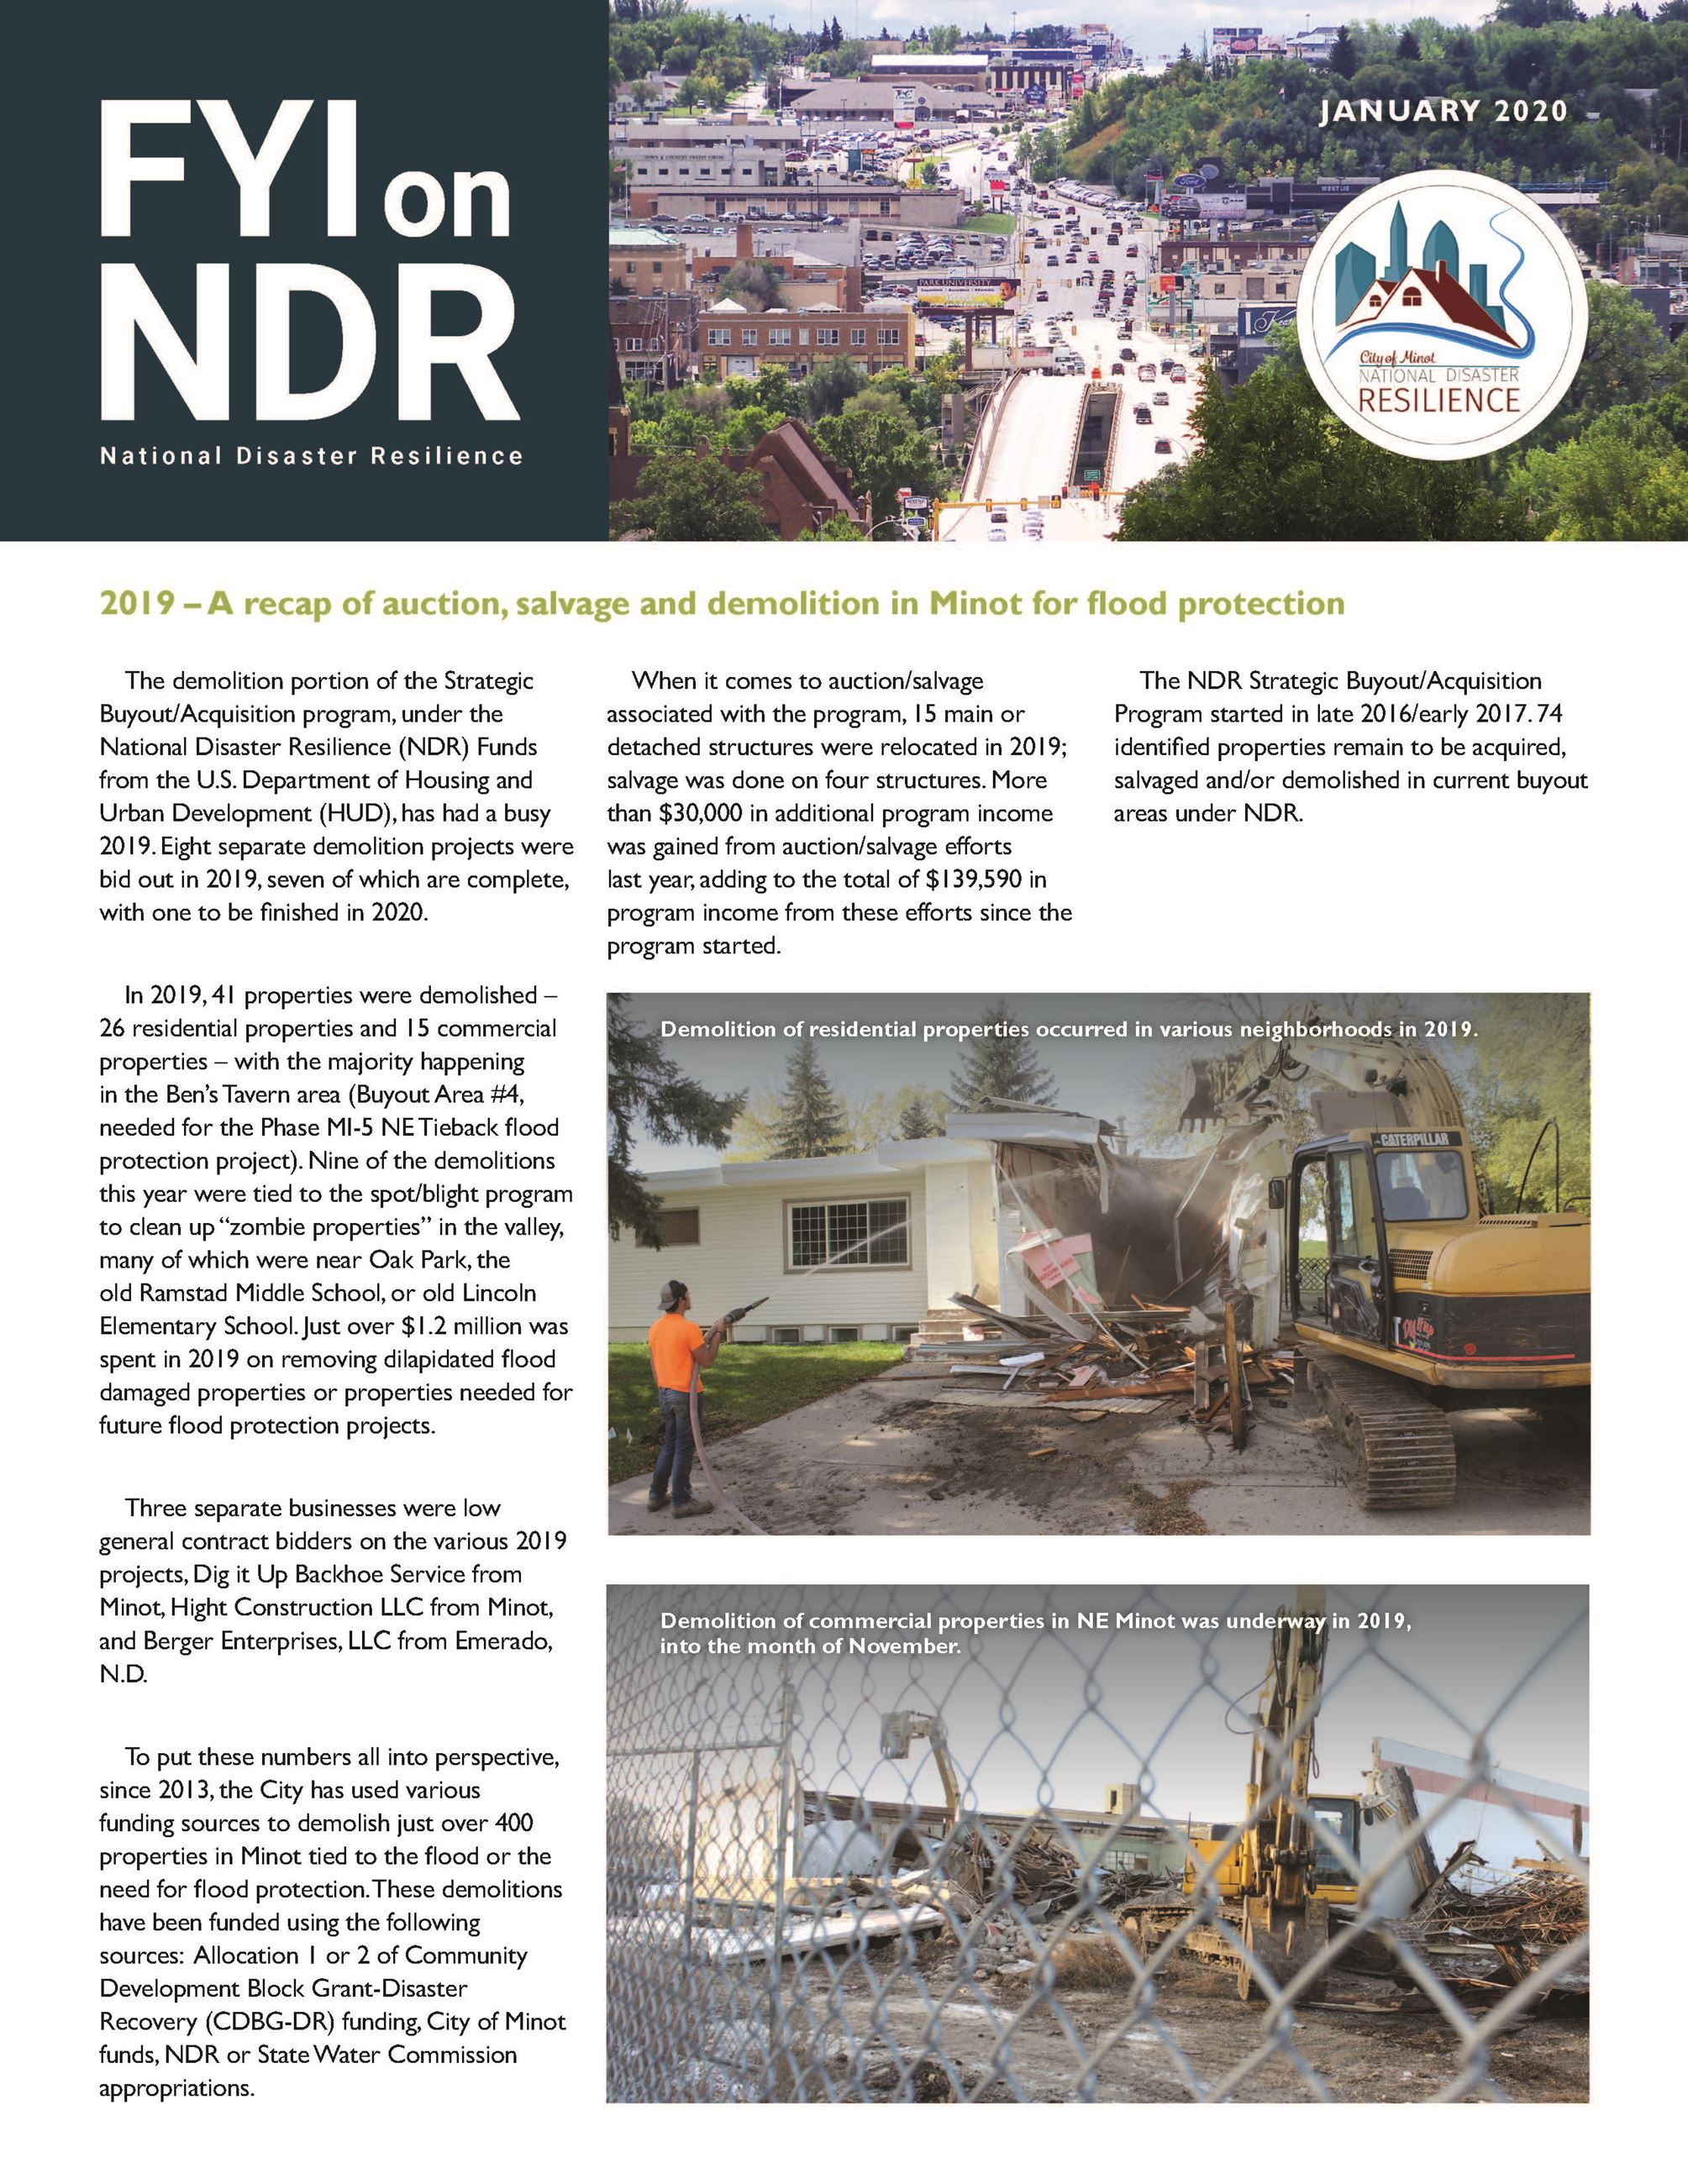 A full page report updating the public on the latest program progress. Pictures include a home being